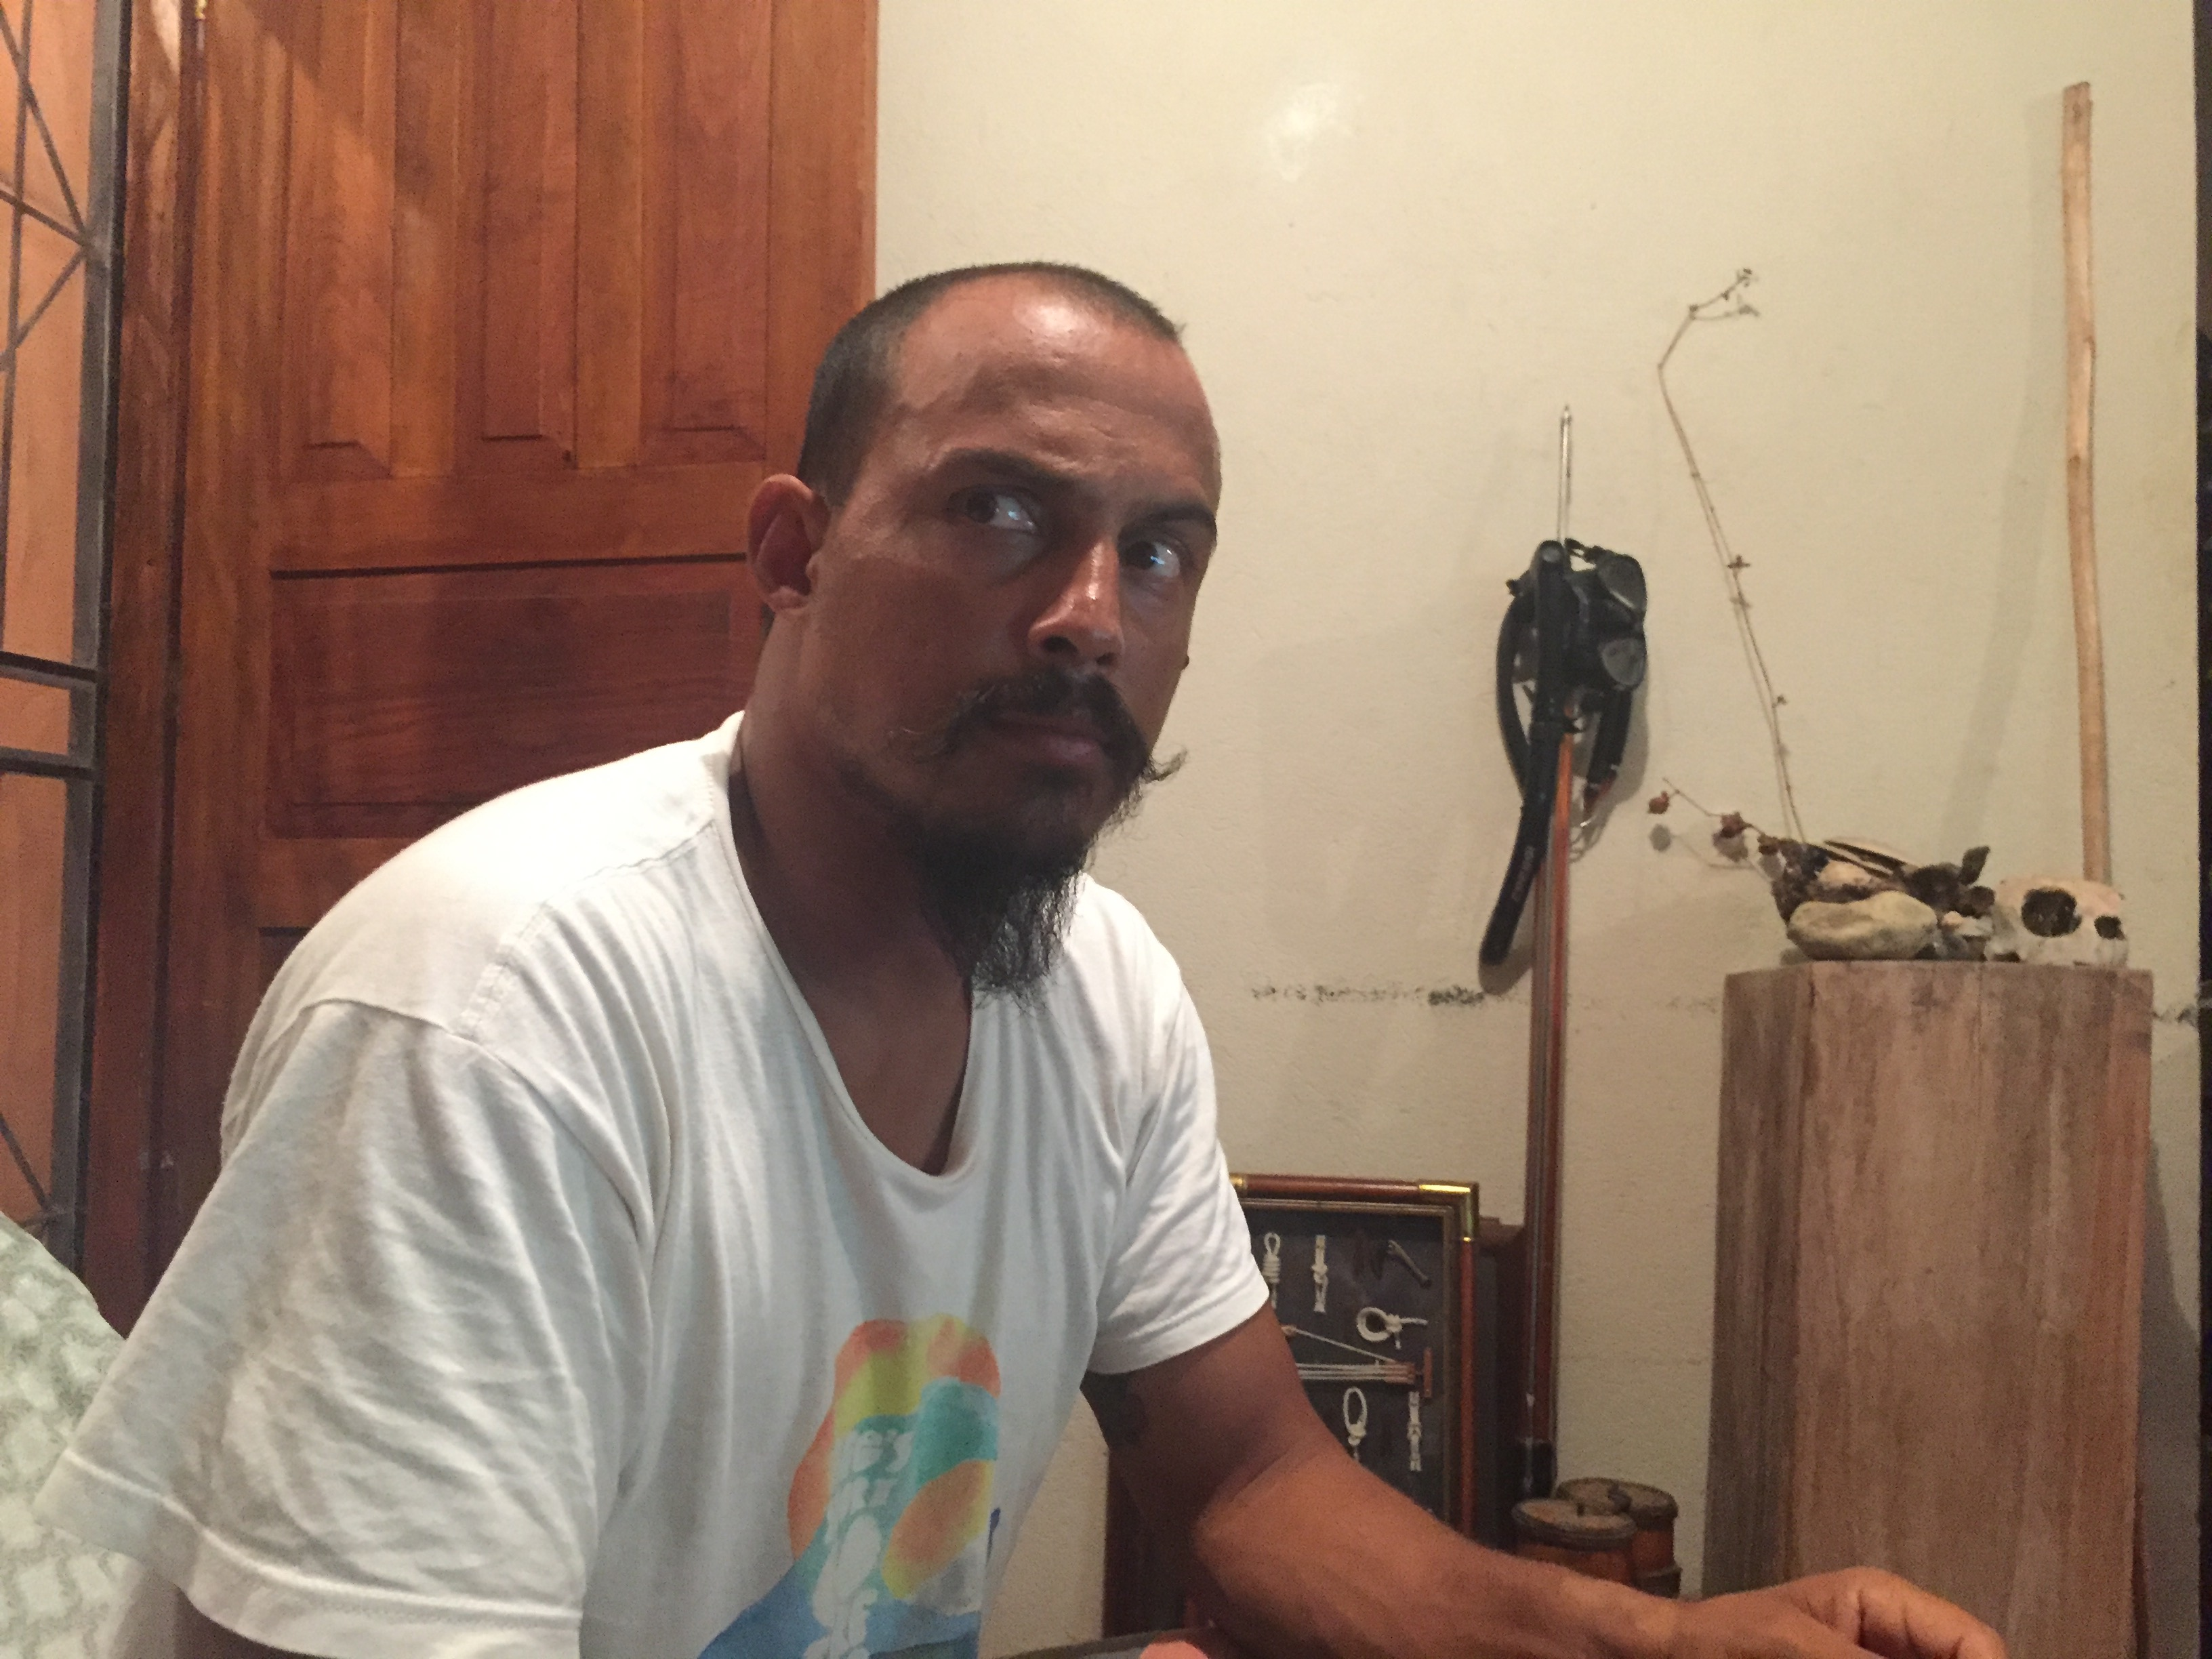 Fabian Sanchez sits on a couch at his house in Tamarindo.